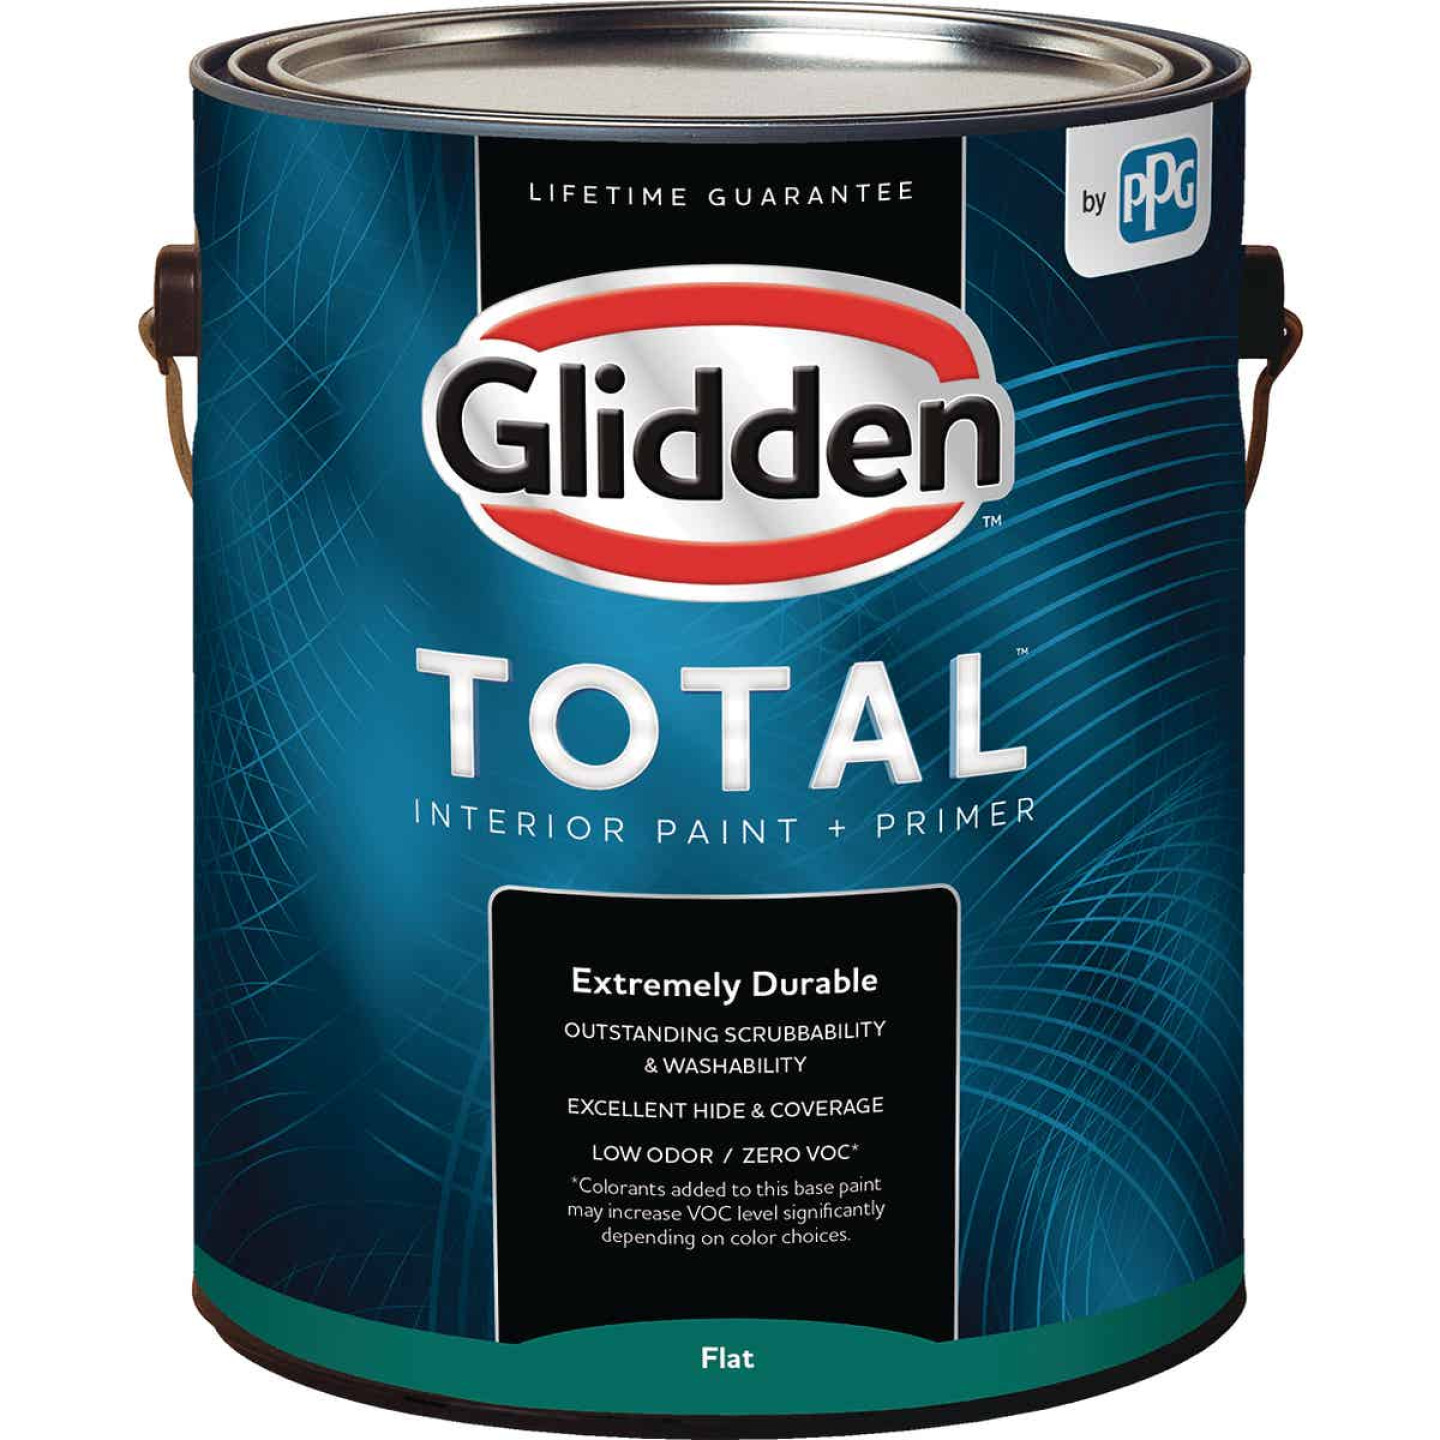 Glidden Total Interior Paint + Primer Flat White & Pastel Base 1 Gallon Image 1